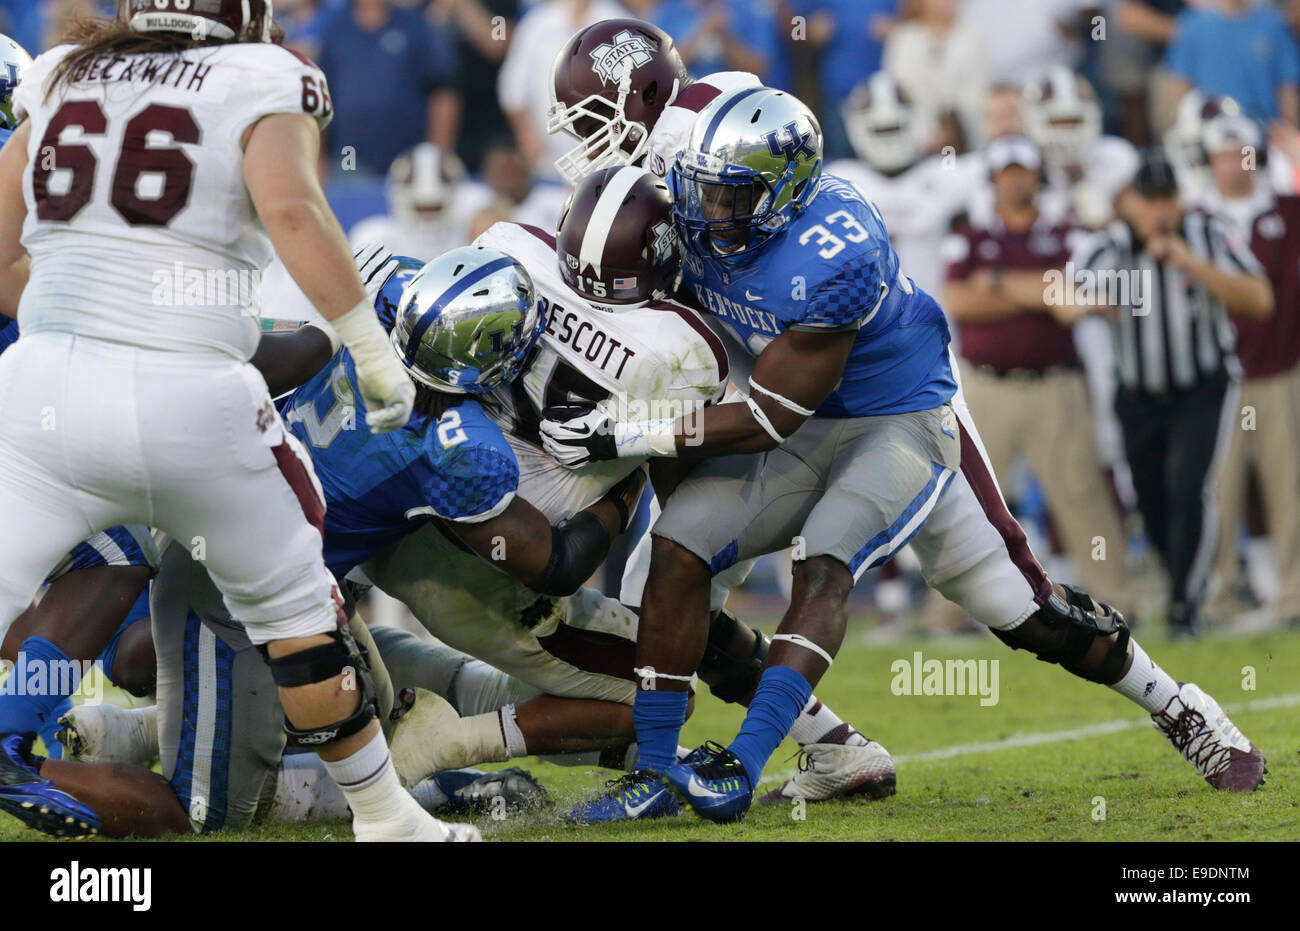 Oct. 25, 2014 - Lexington, Ky, US - Kentucky's Alvin Dupree (2) and Kentucky's Ryan Flannigan stopped Mississippi - Stock Image